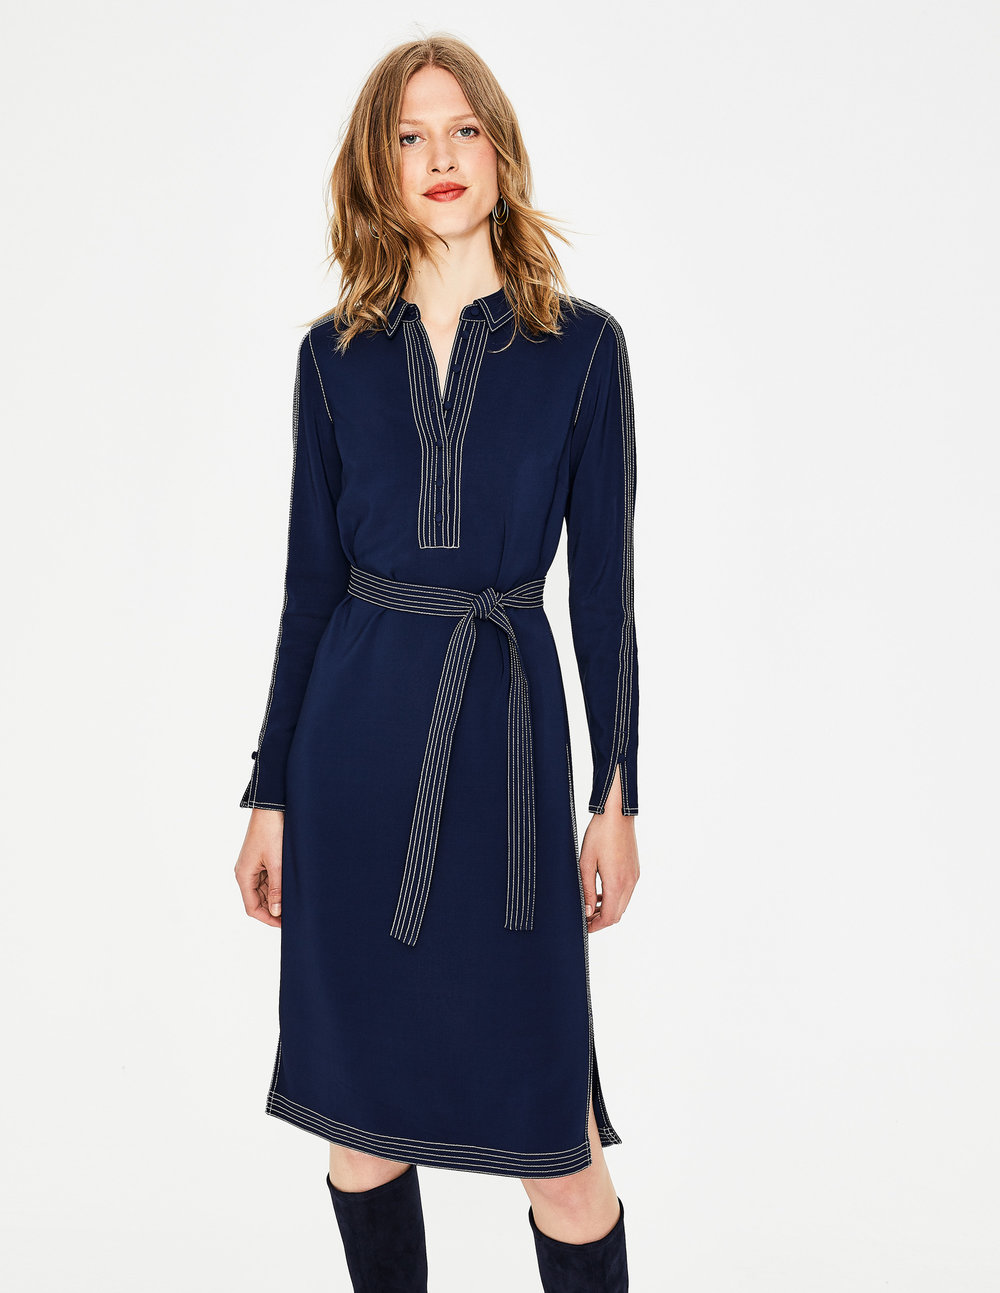 SCARLETT SHIRT DRESS. Was: $180. Available in red, blue and long. Boden. Now: $90.